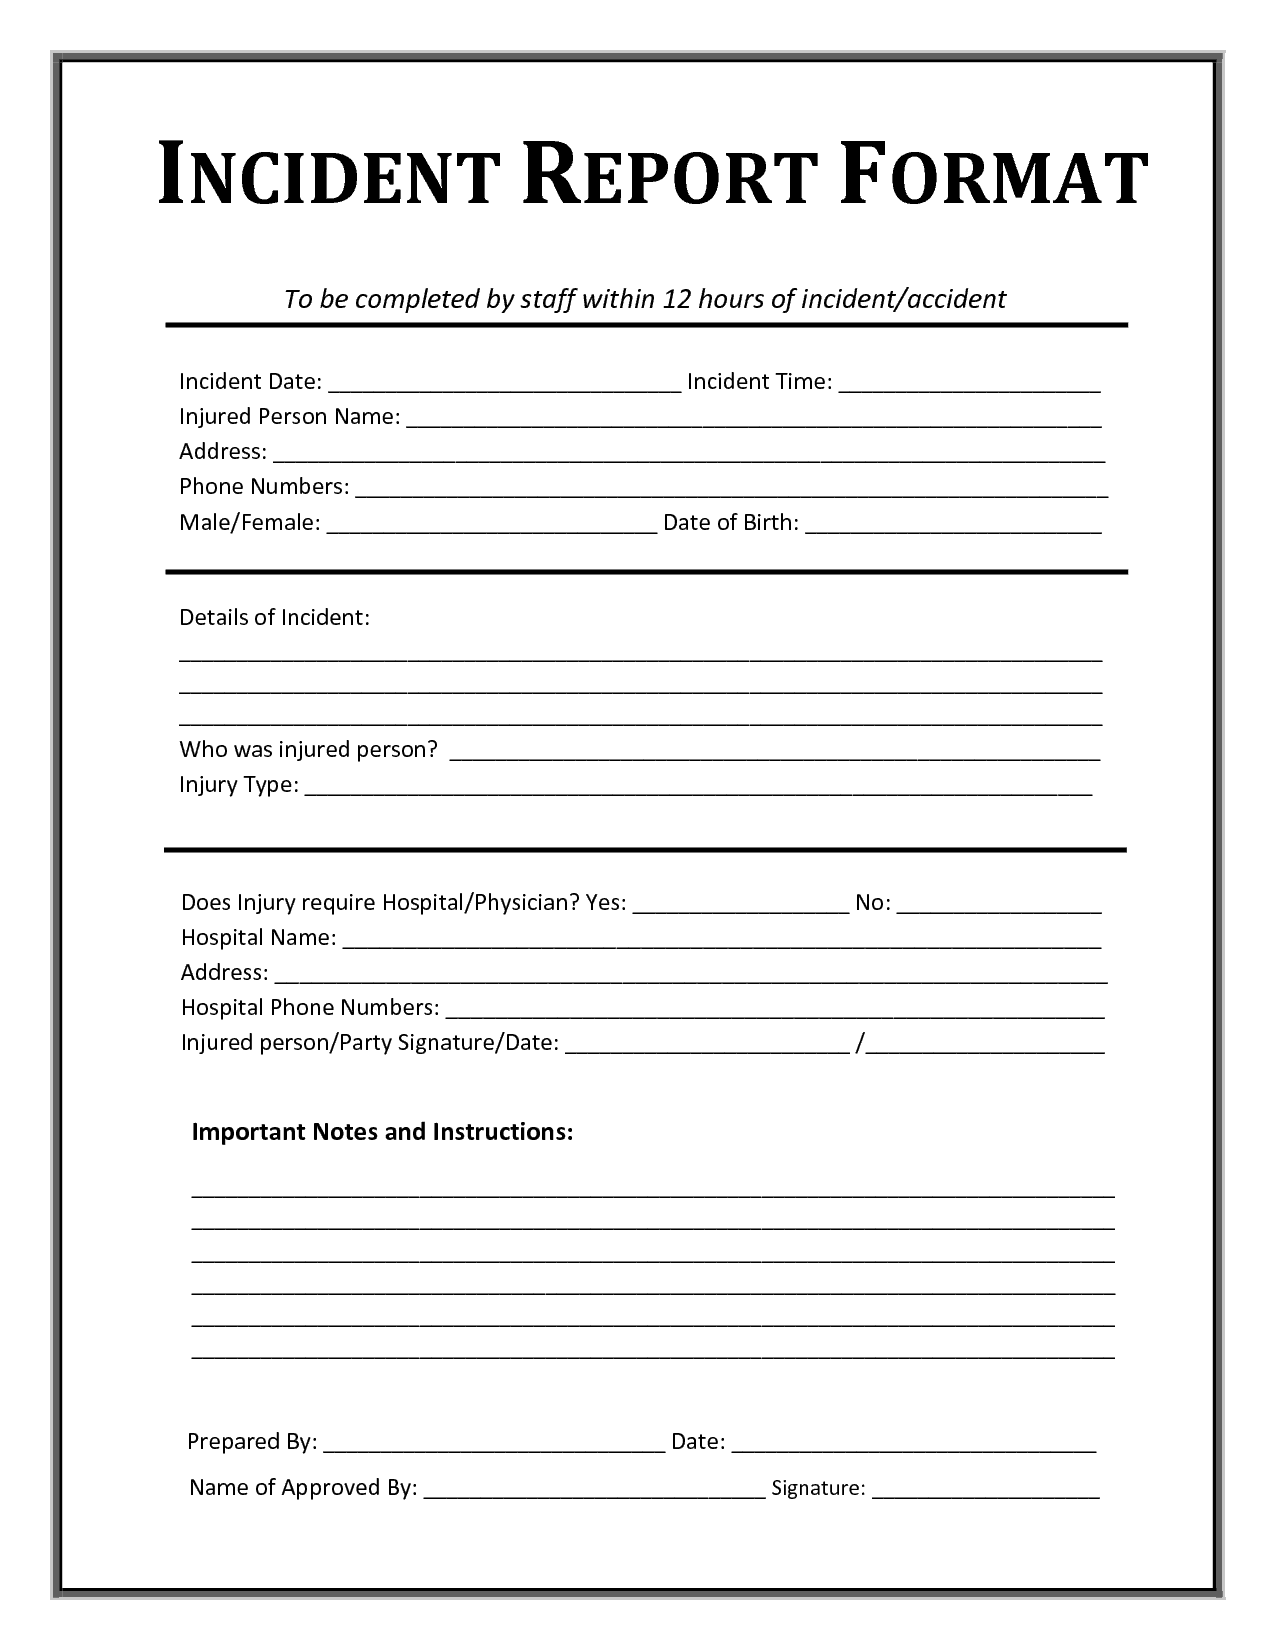 Incident Report Format Sample Happy Birthday Image – Coupon Disclaimer Example